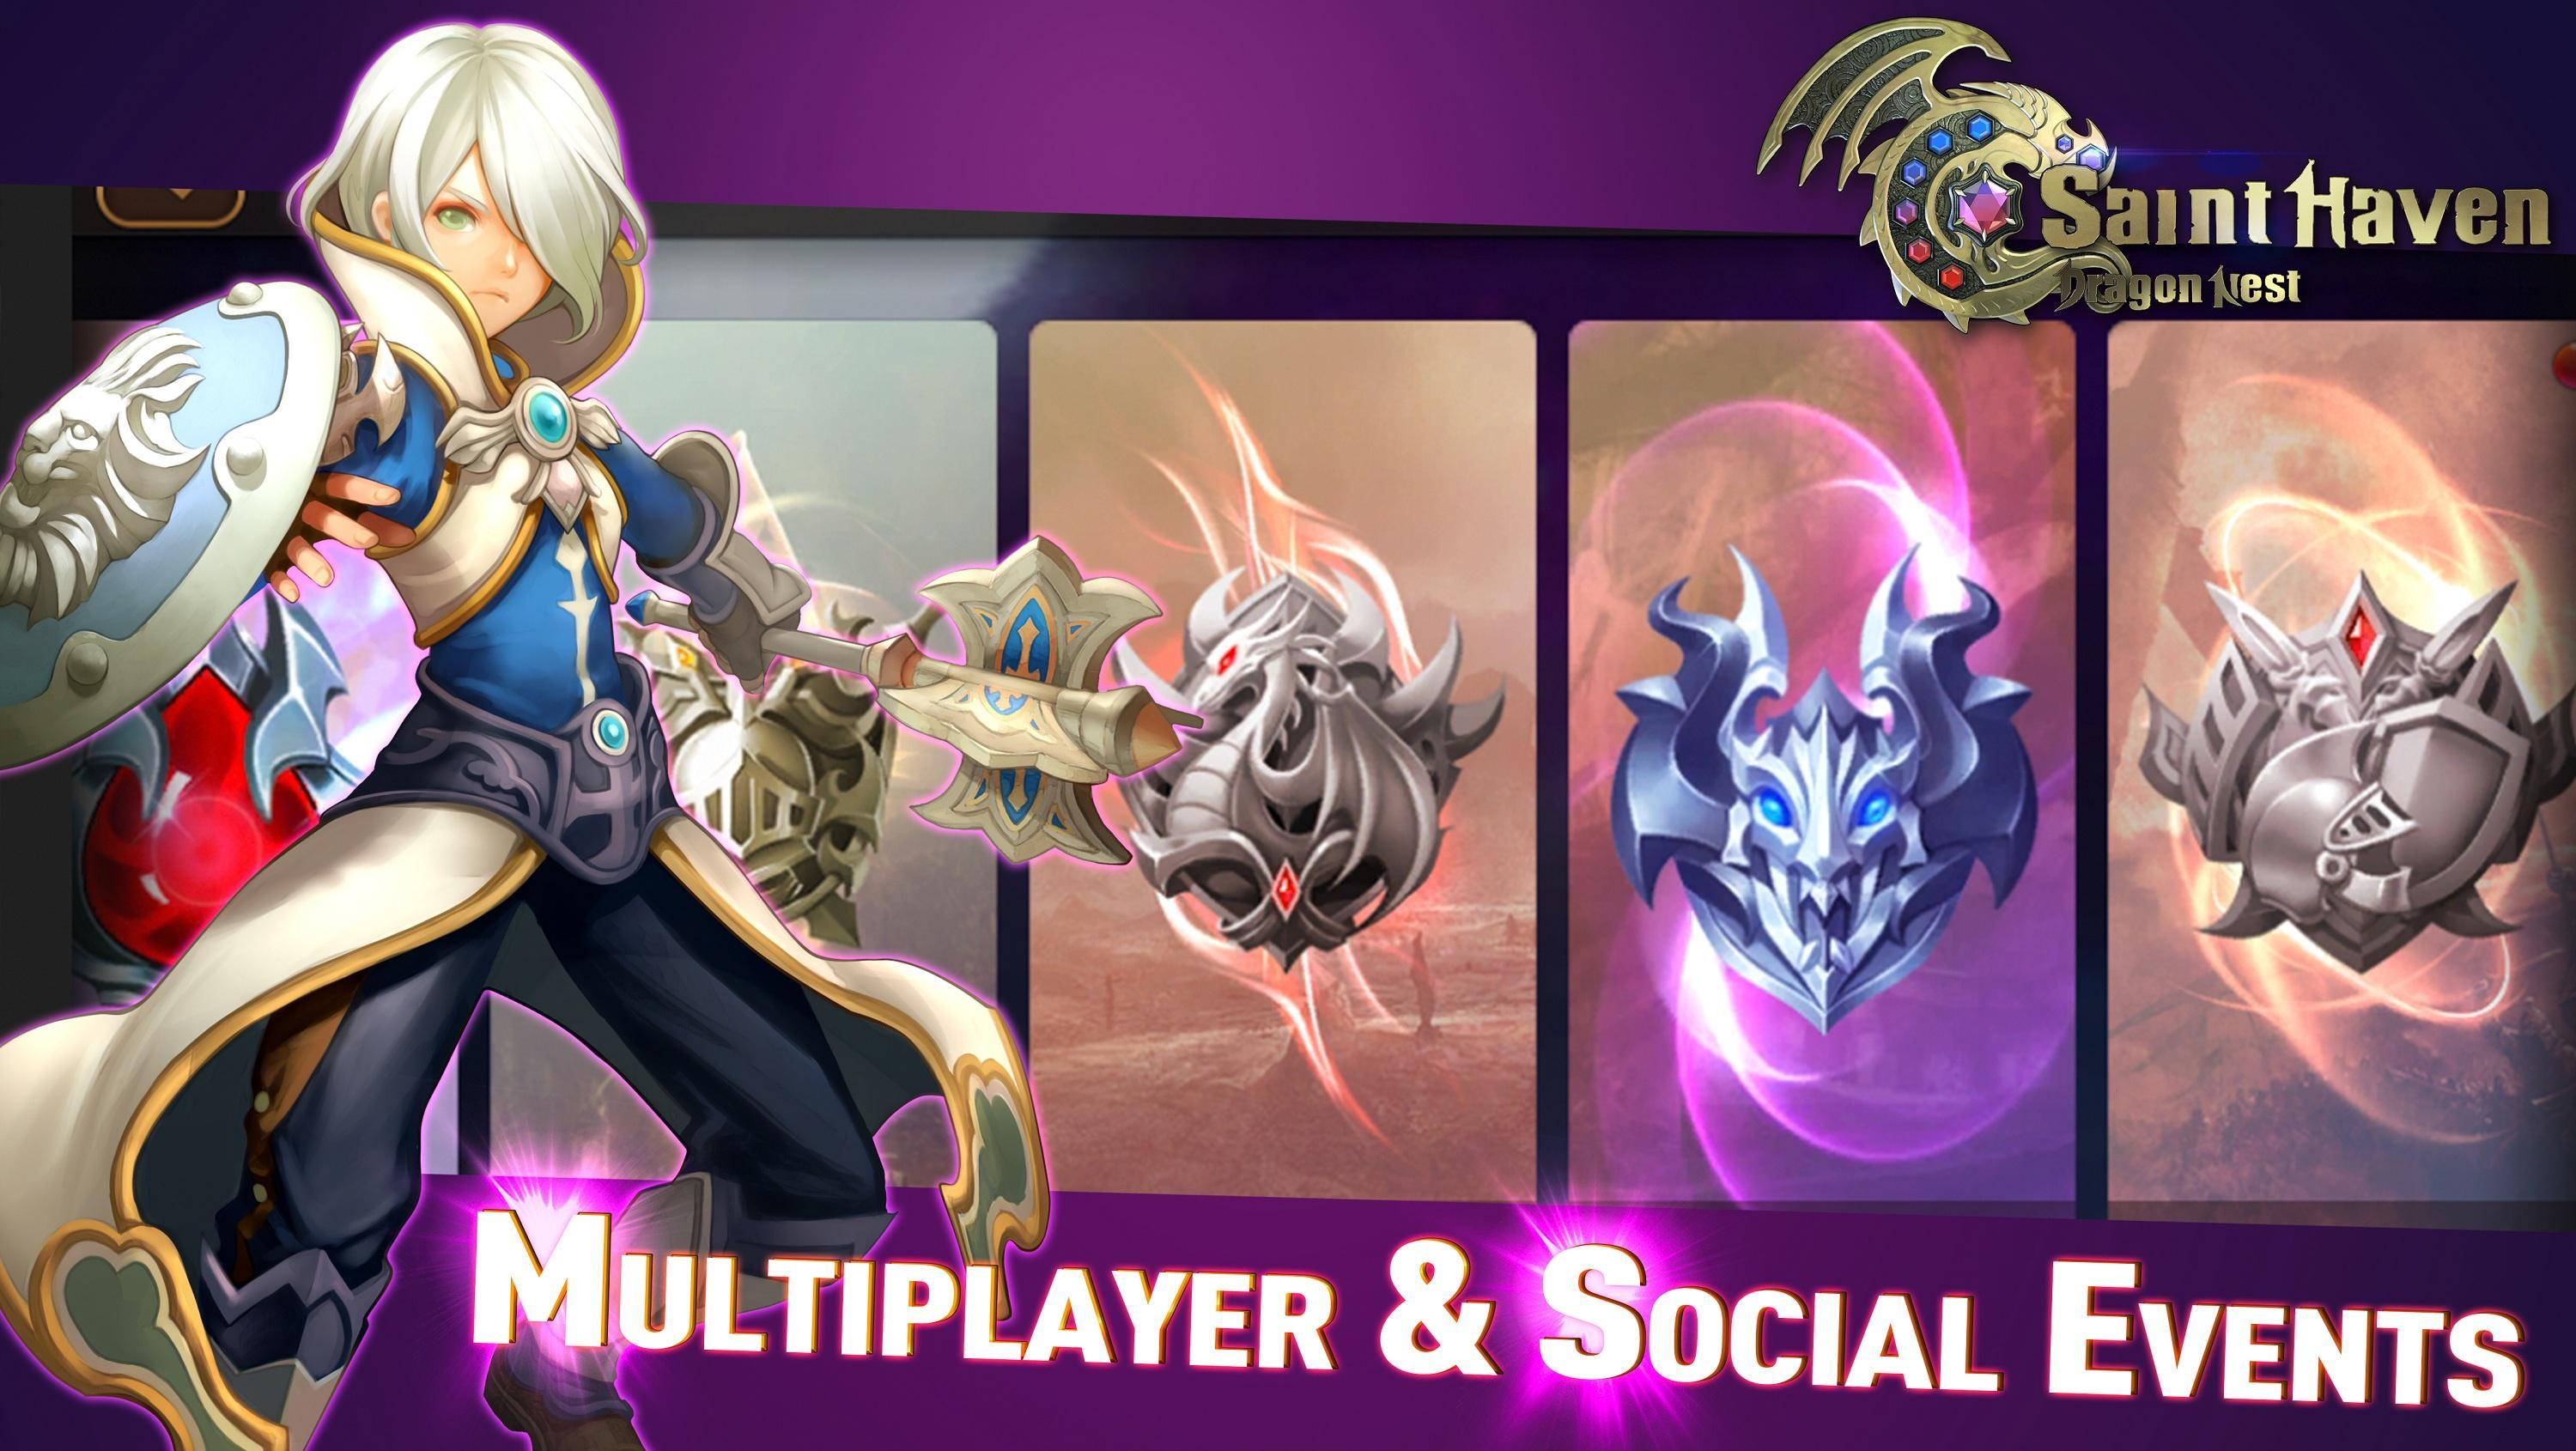 Dragon Nest: Saint Haven for Android - APK Download